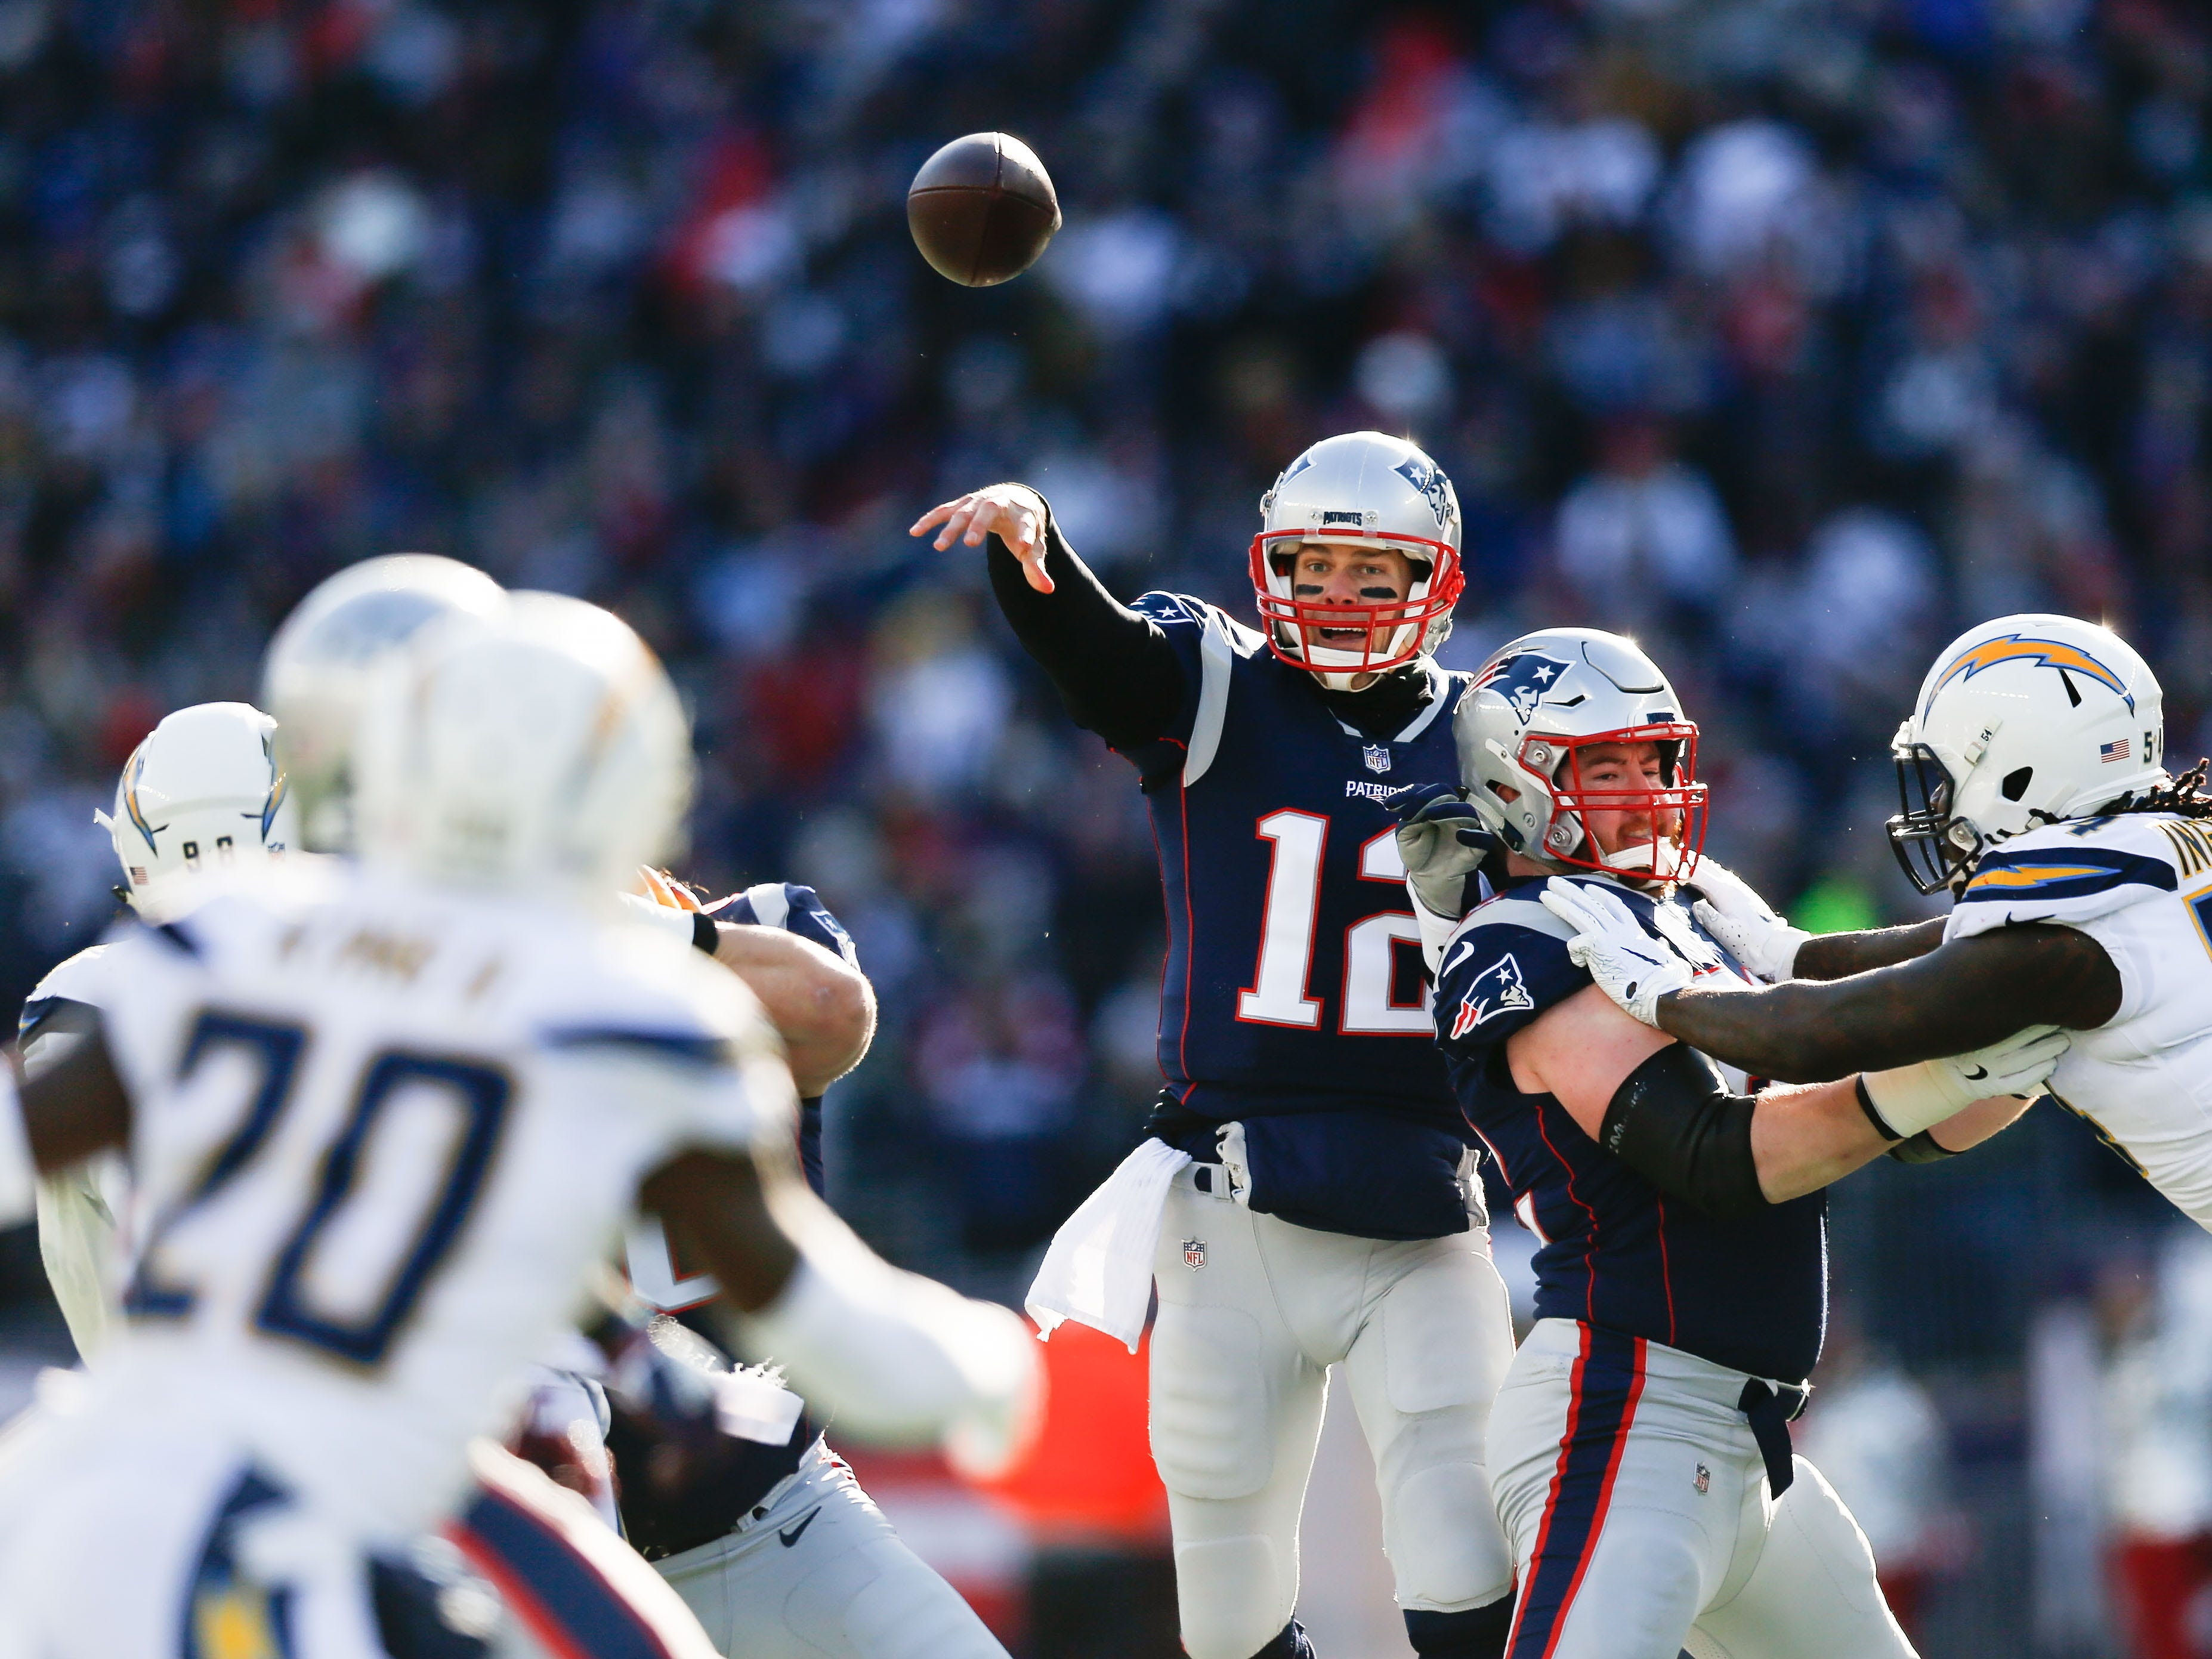 New England Patriots quarterback Tom Brady (12) throws against the Los Angeles Chargers during the first quarter in an AFC Divisional playoff football game at Gillette Stadium.